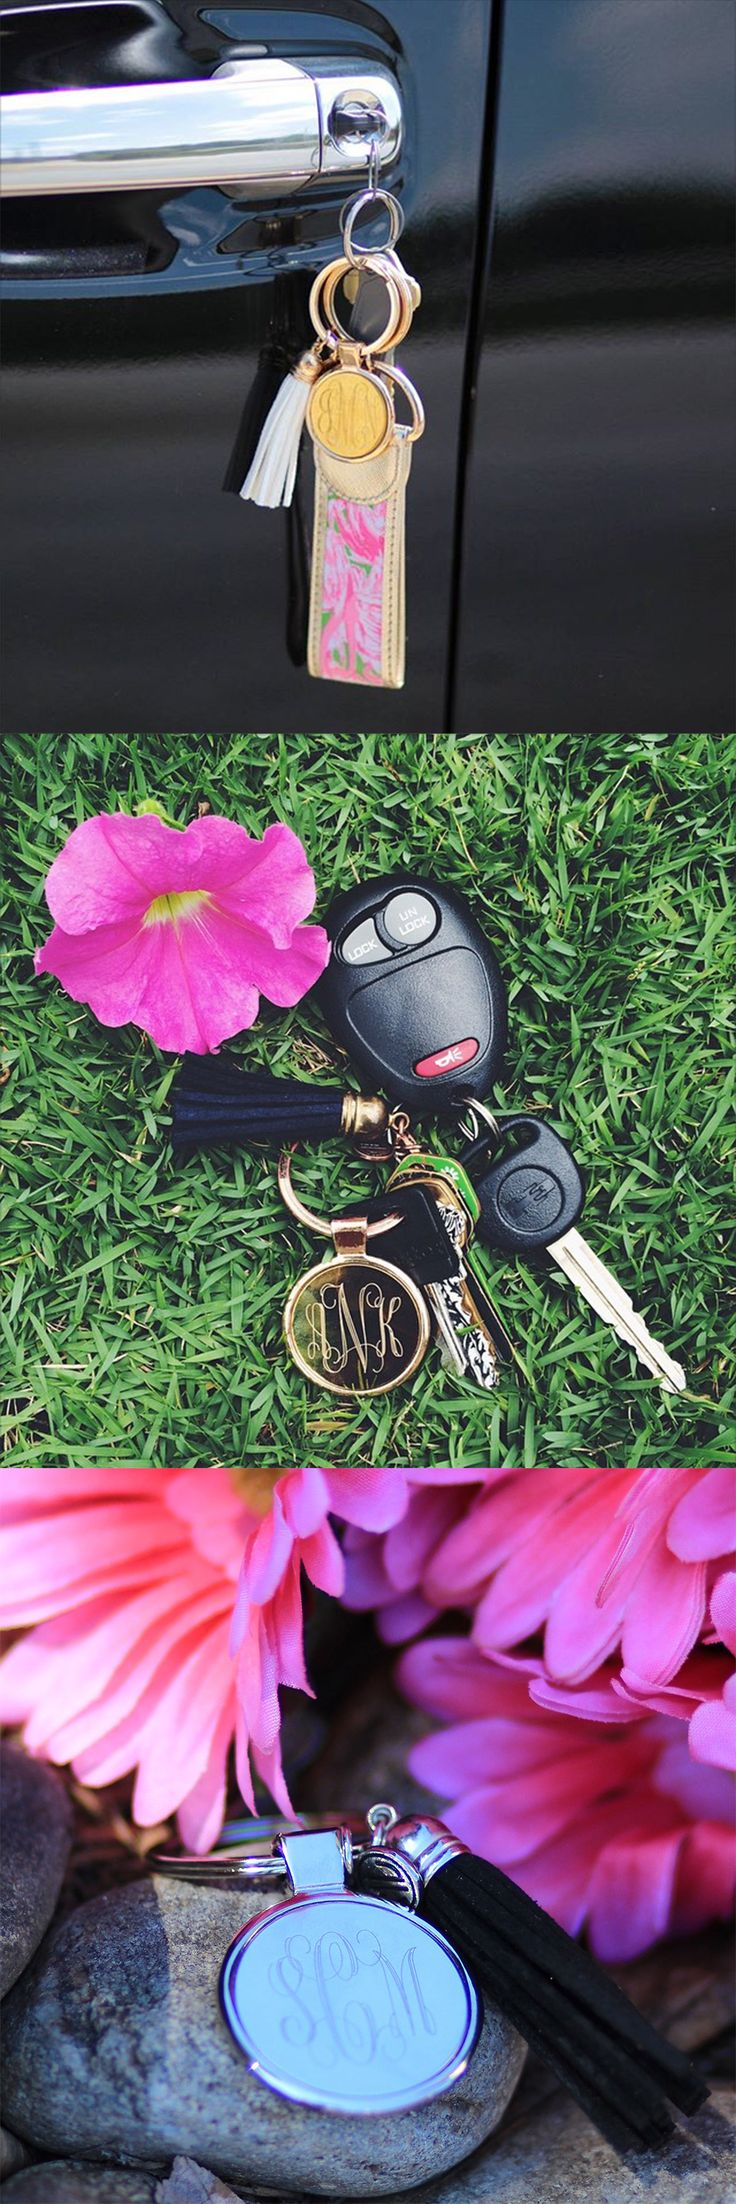 Tassel Key Chains // Marleylilly.com